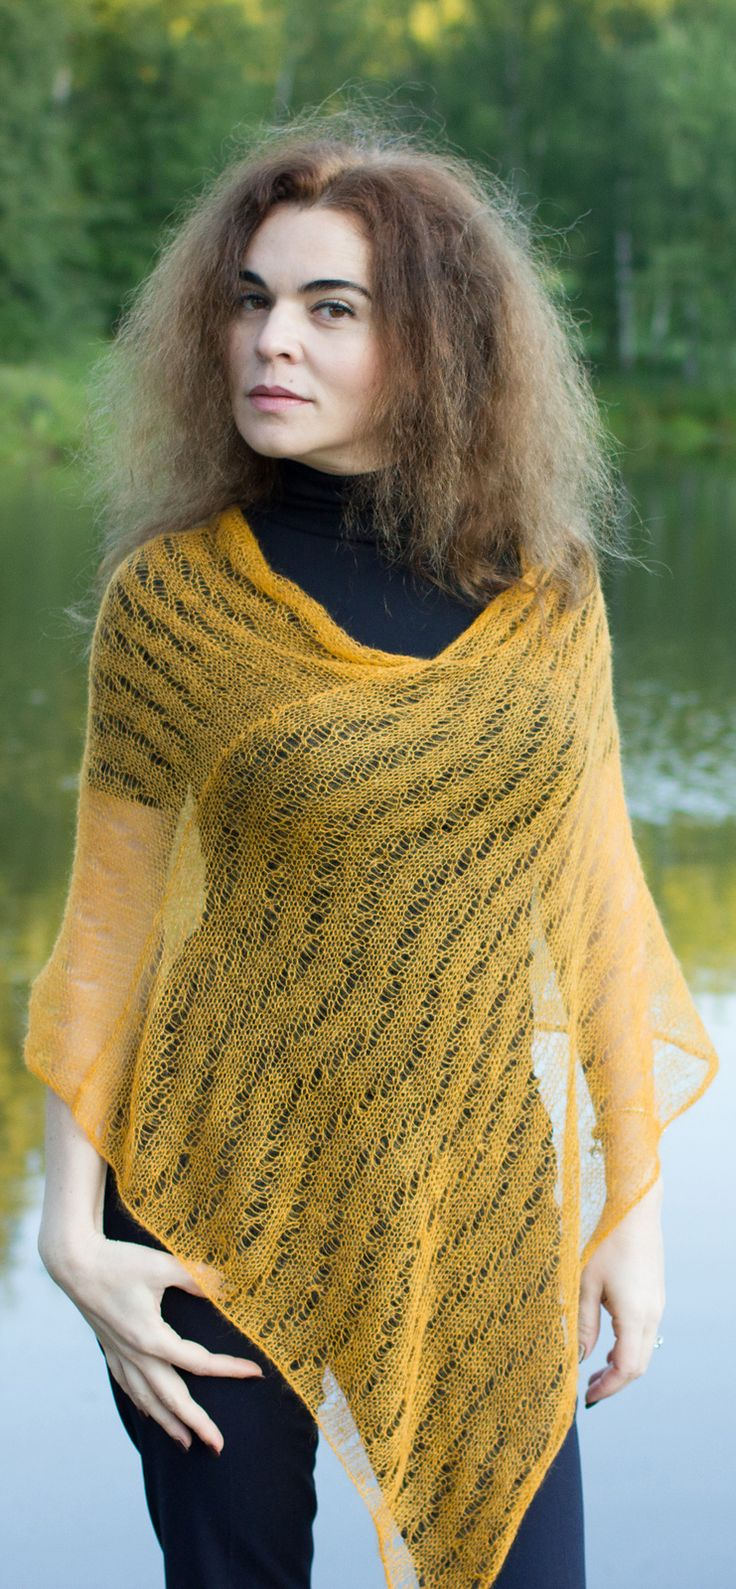 Beginner Knitting Poncho : Ravelry lace poncho by tobestudio knitting pattern for